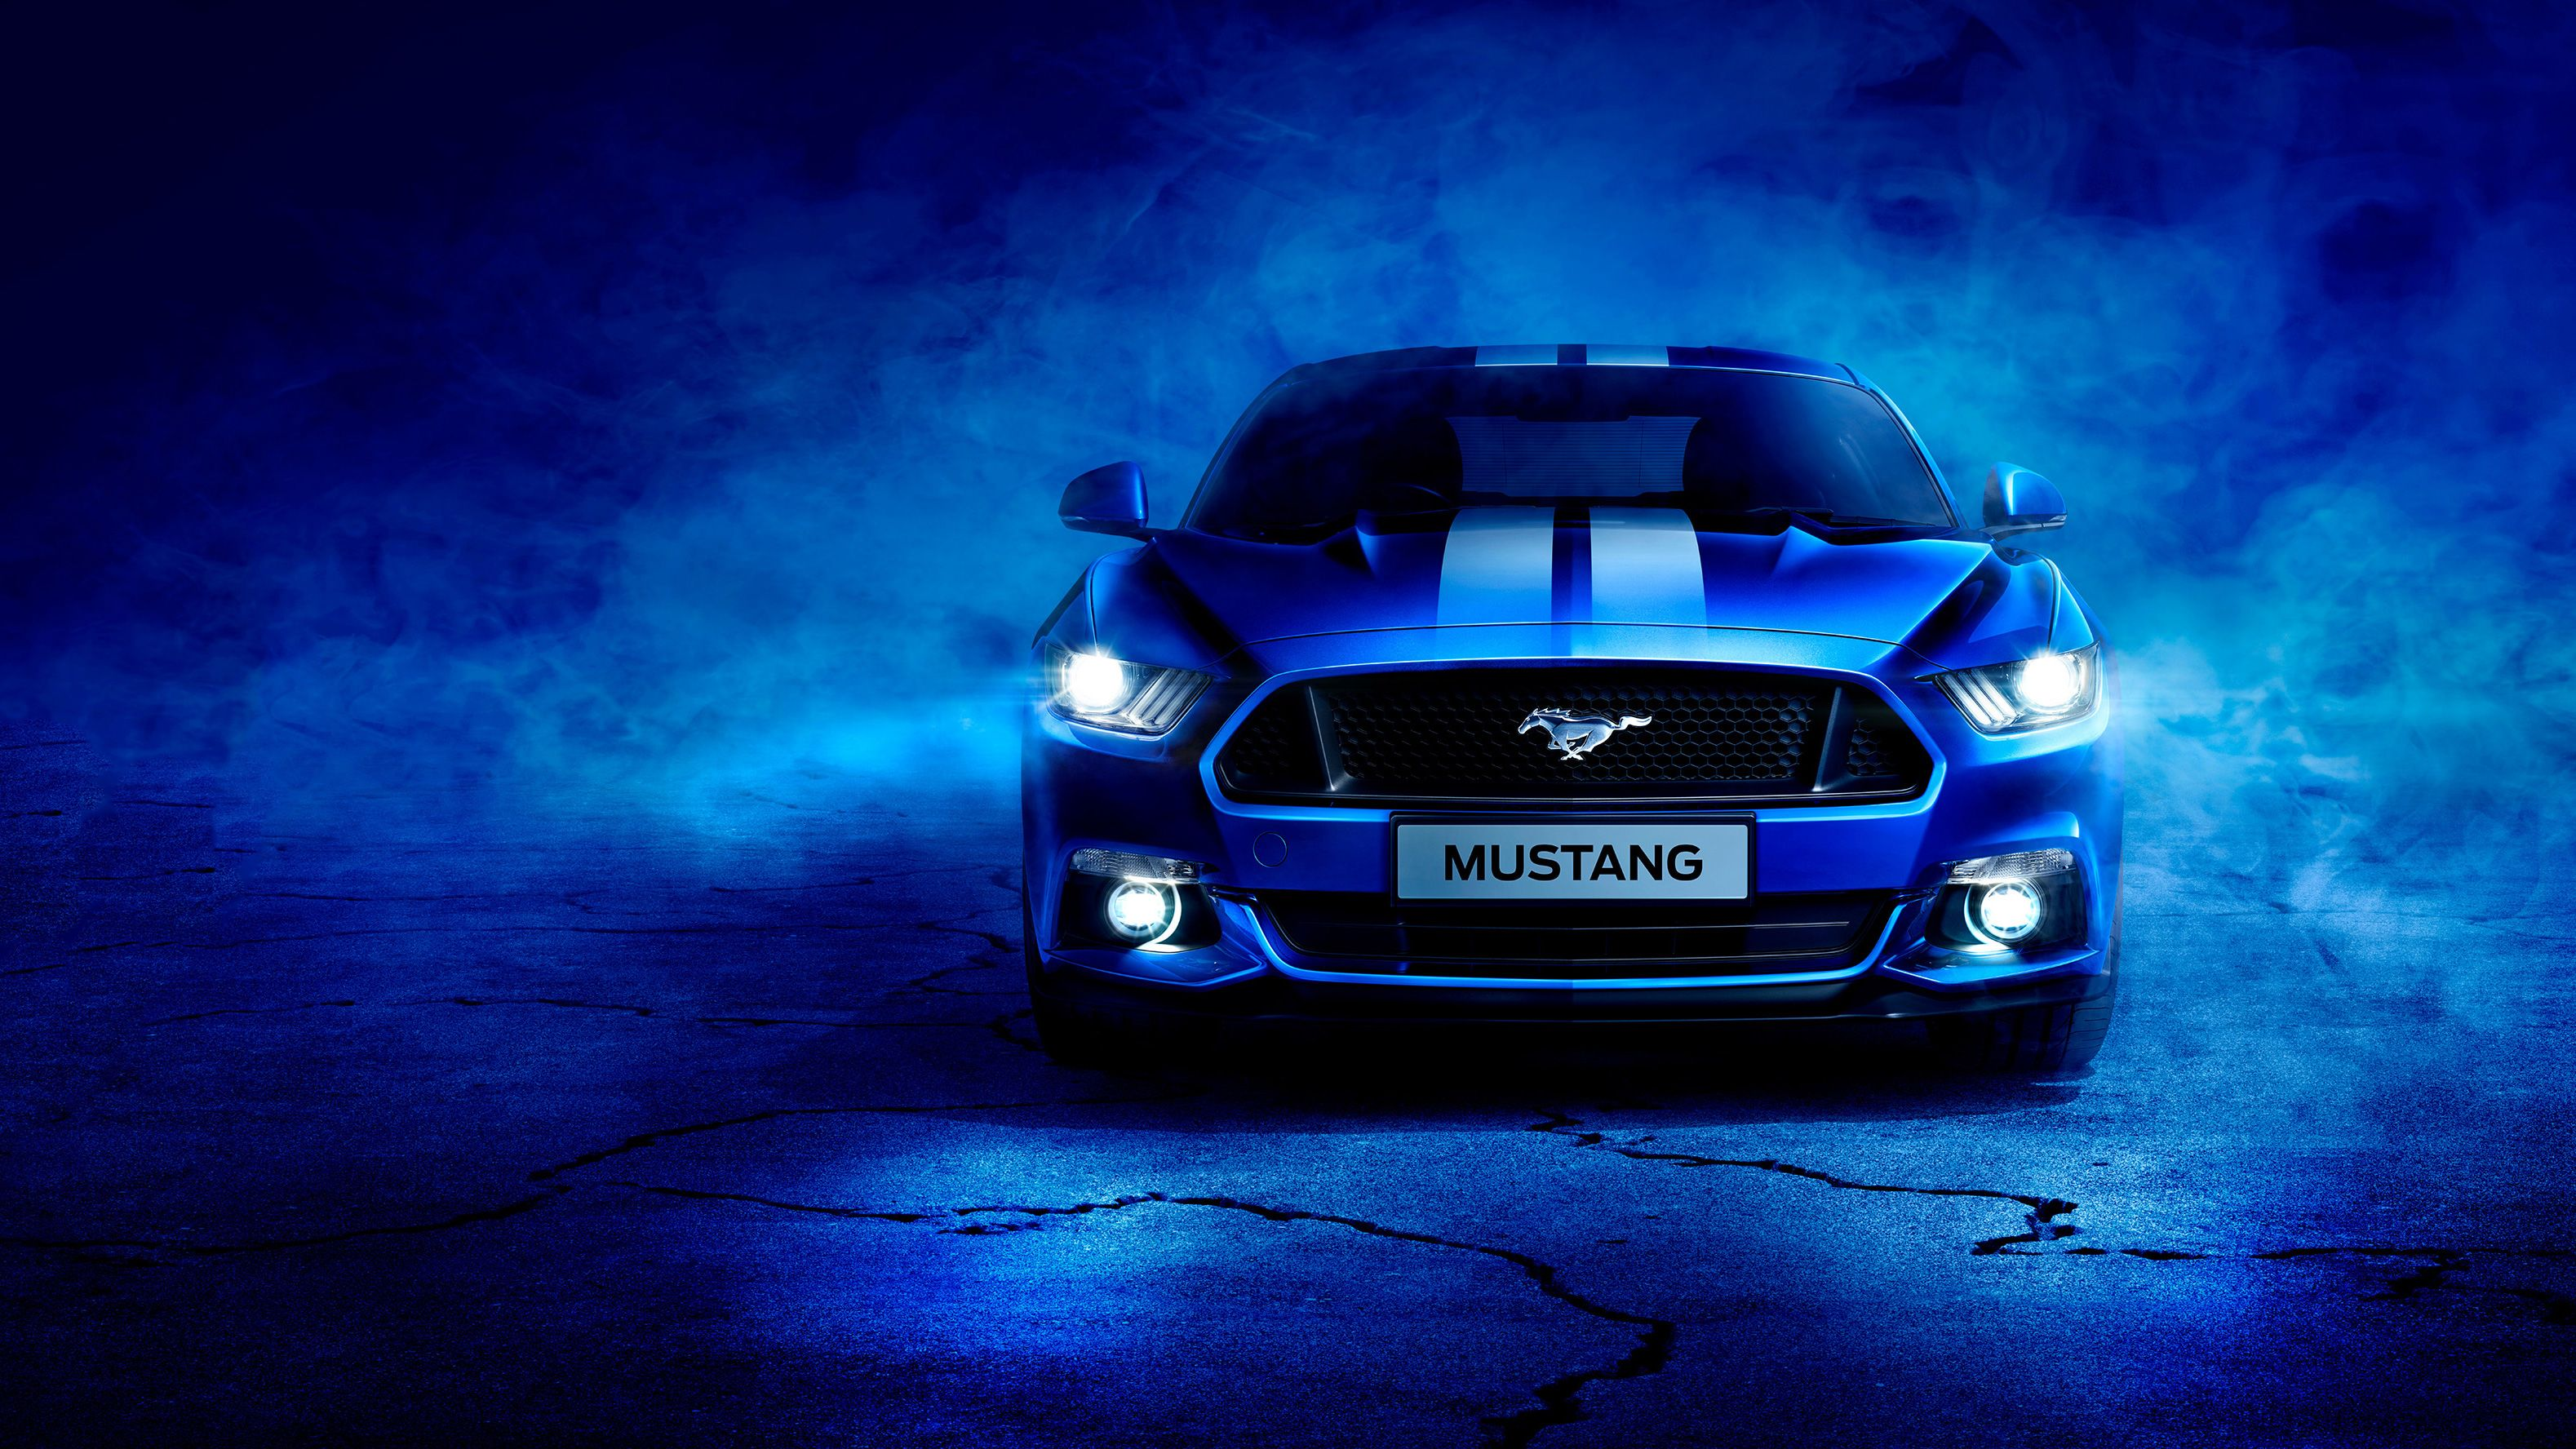 Blue Ford Mustang Blue Mustang Wallpaper 4k Is Amazing Hd Wallpapers For Desktop Or Mobile Explore More Related In 2020 Mustang Wallpaper Ford Mustang Blue Mustang